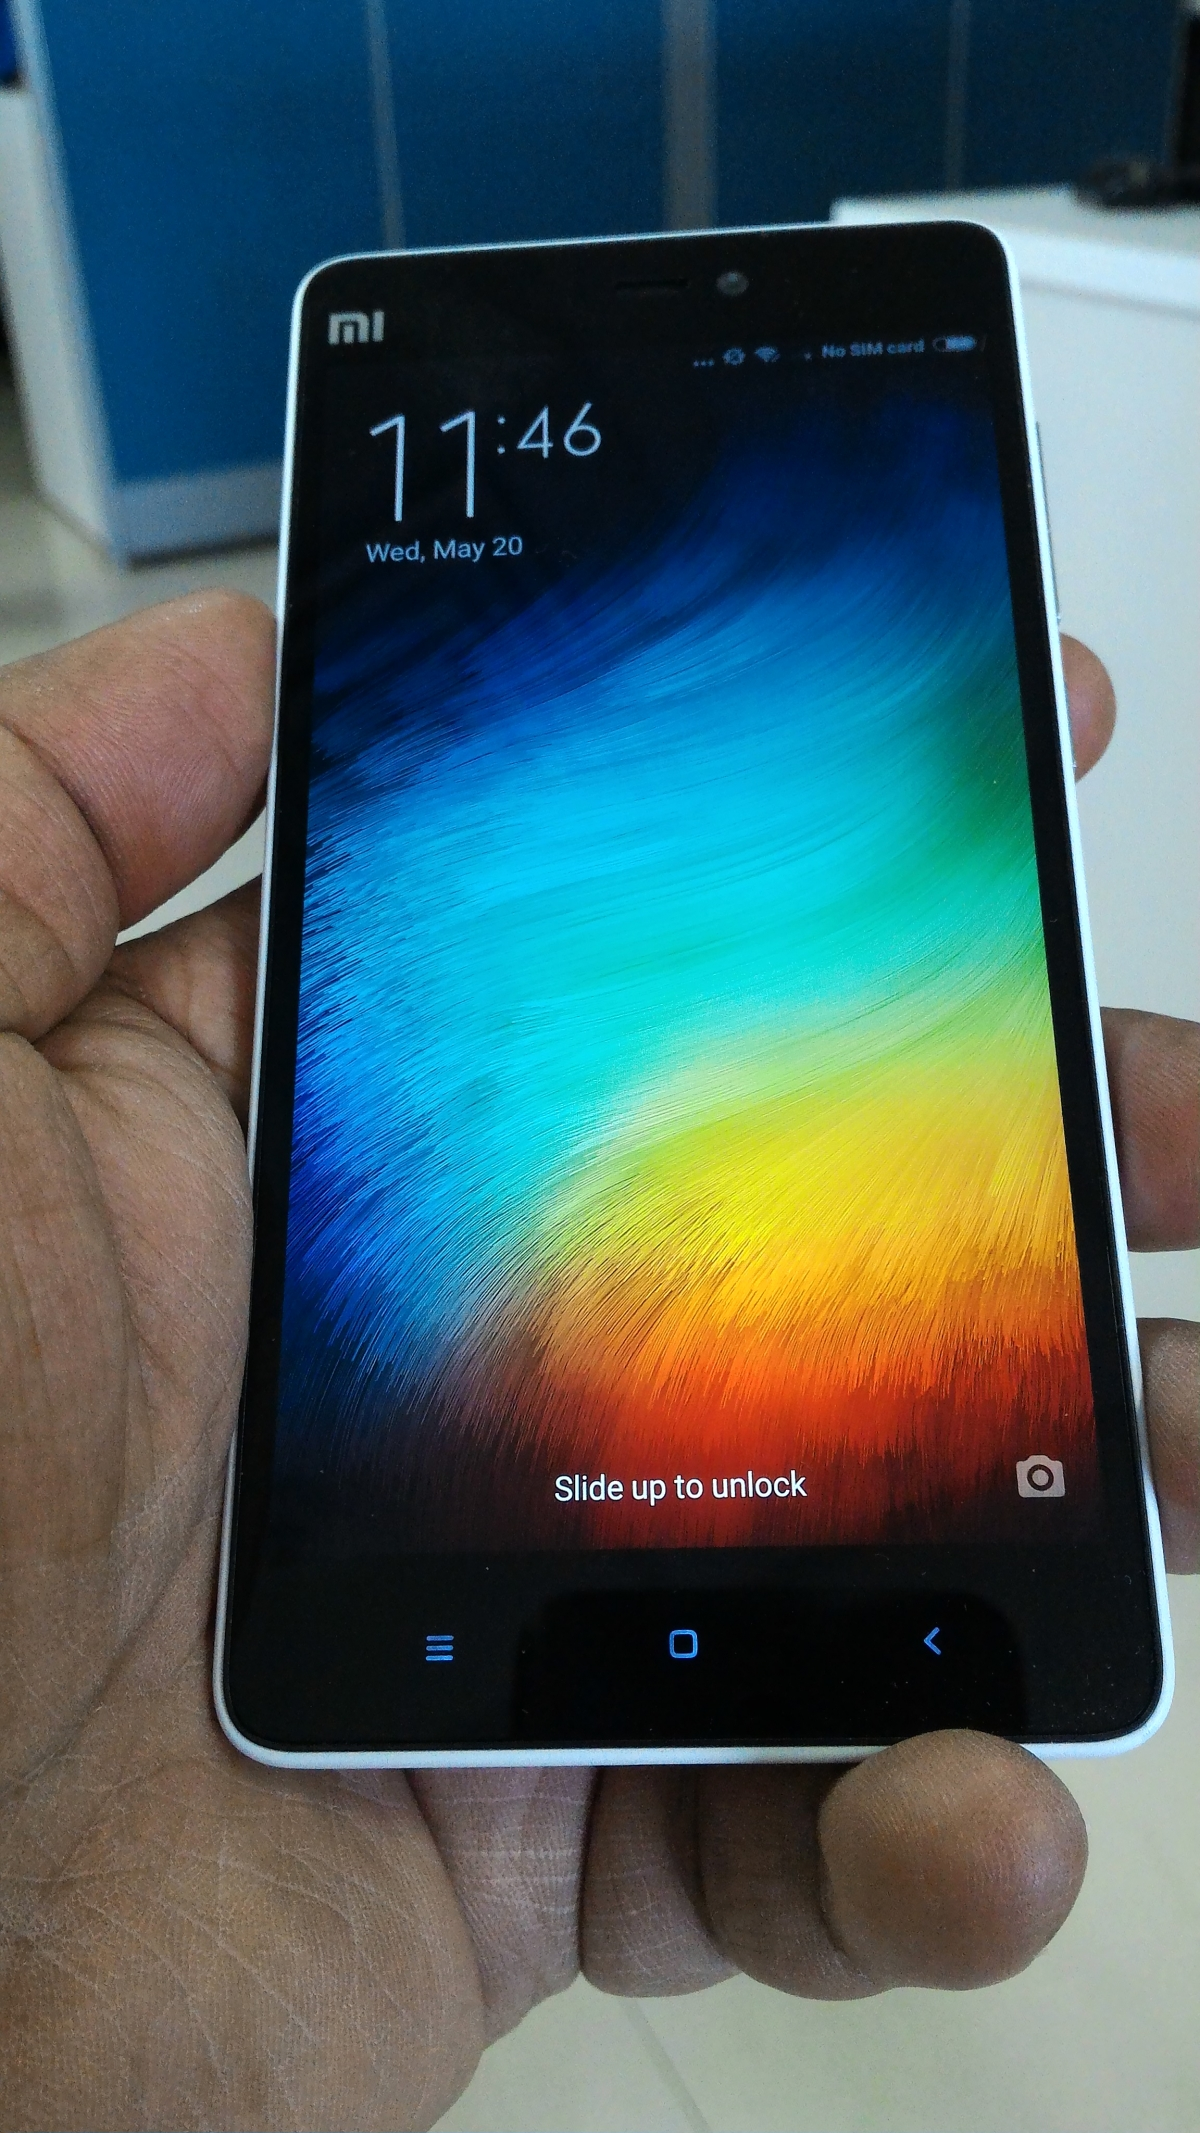 1f8bfa823b8 Xiaomi Mi 4i Review  A Decent All-Round Smartphone at an Affordable Price